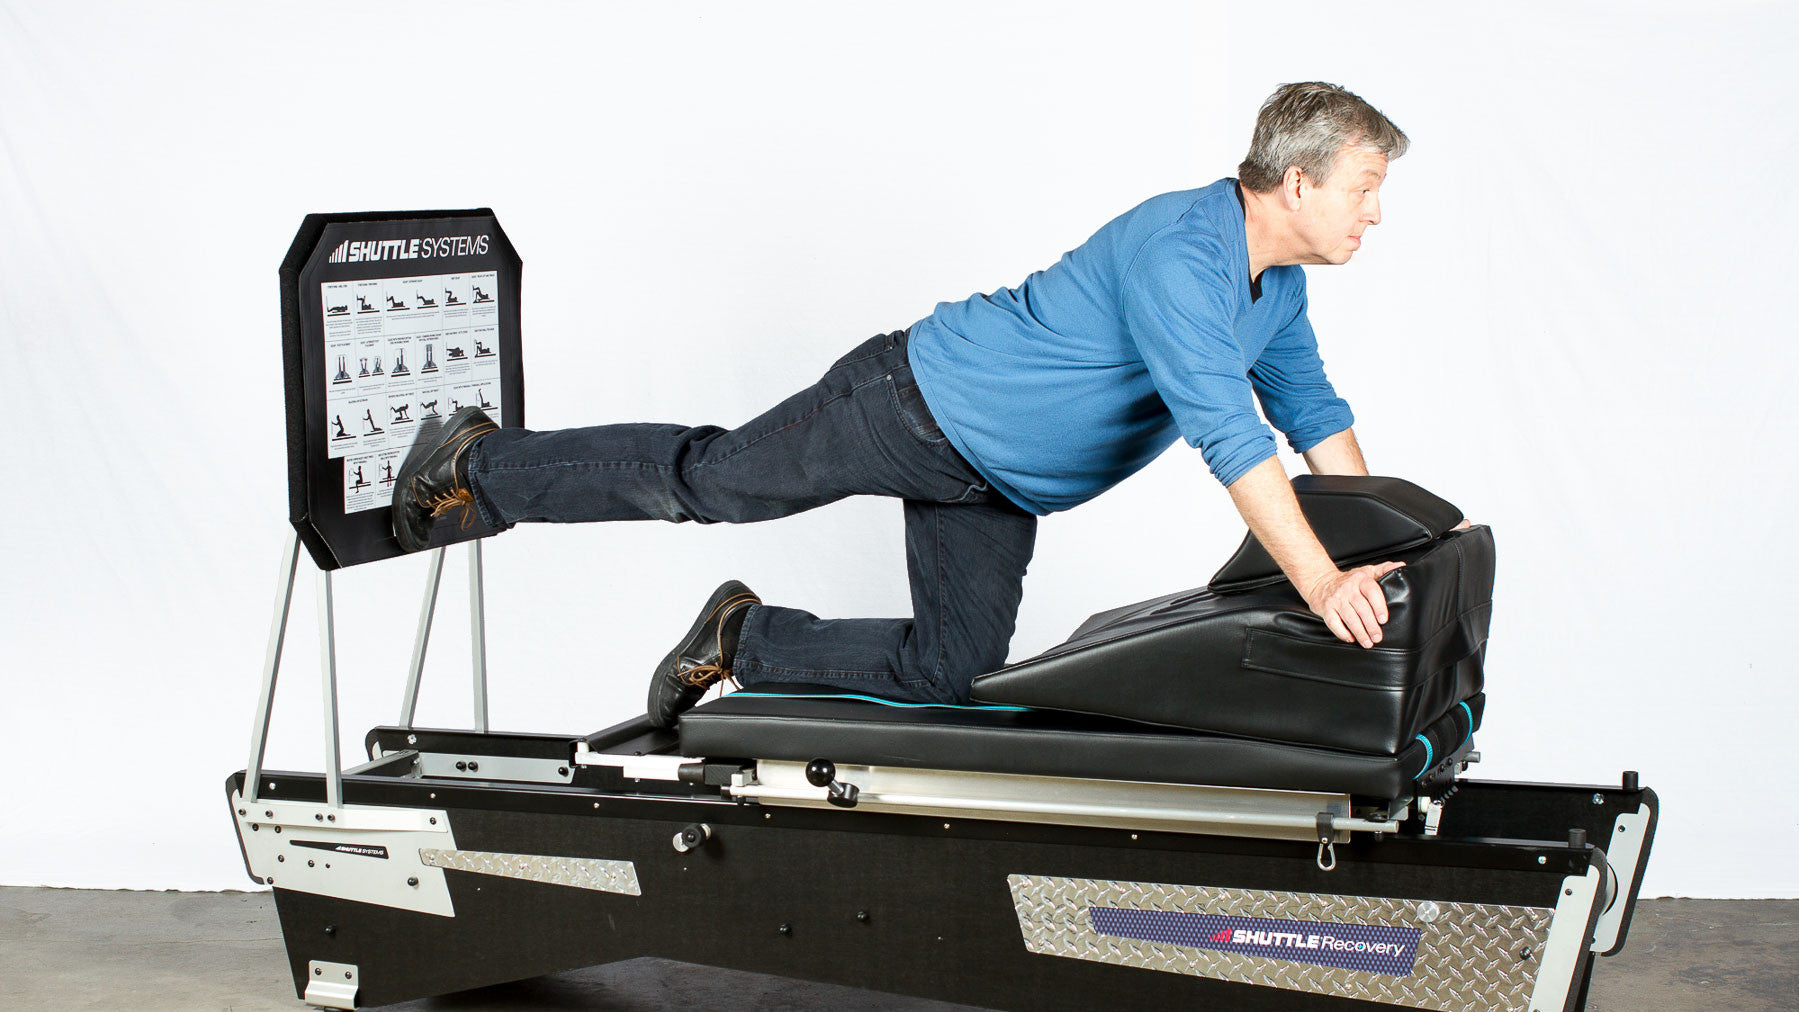 Arizona physical therapy equipment - See The Shuttle Recovery In Action